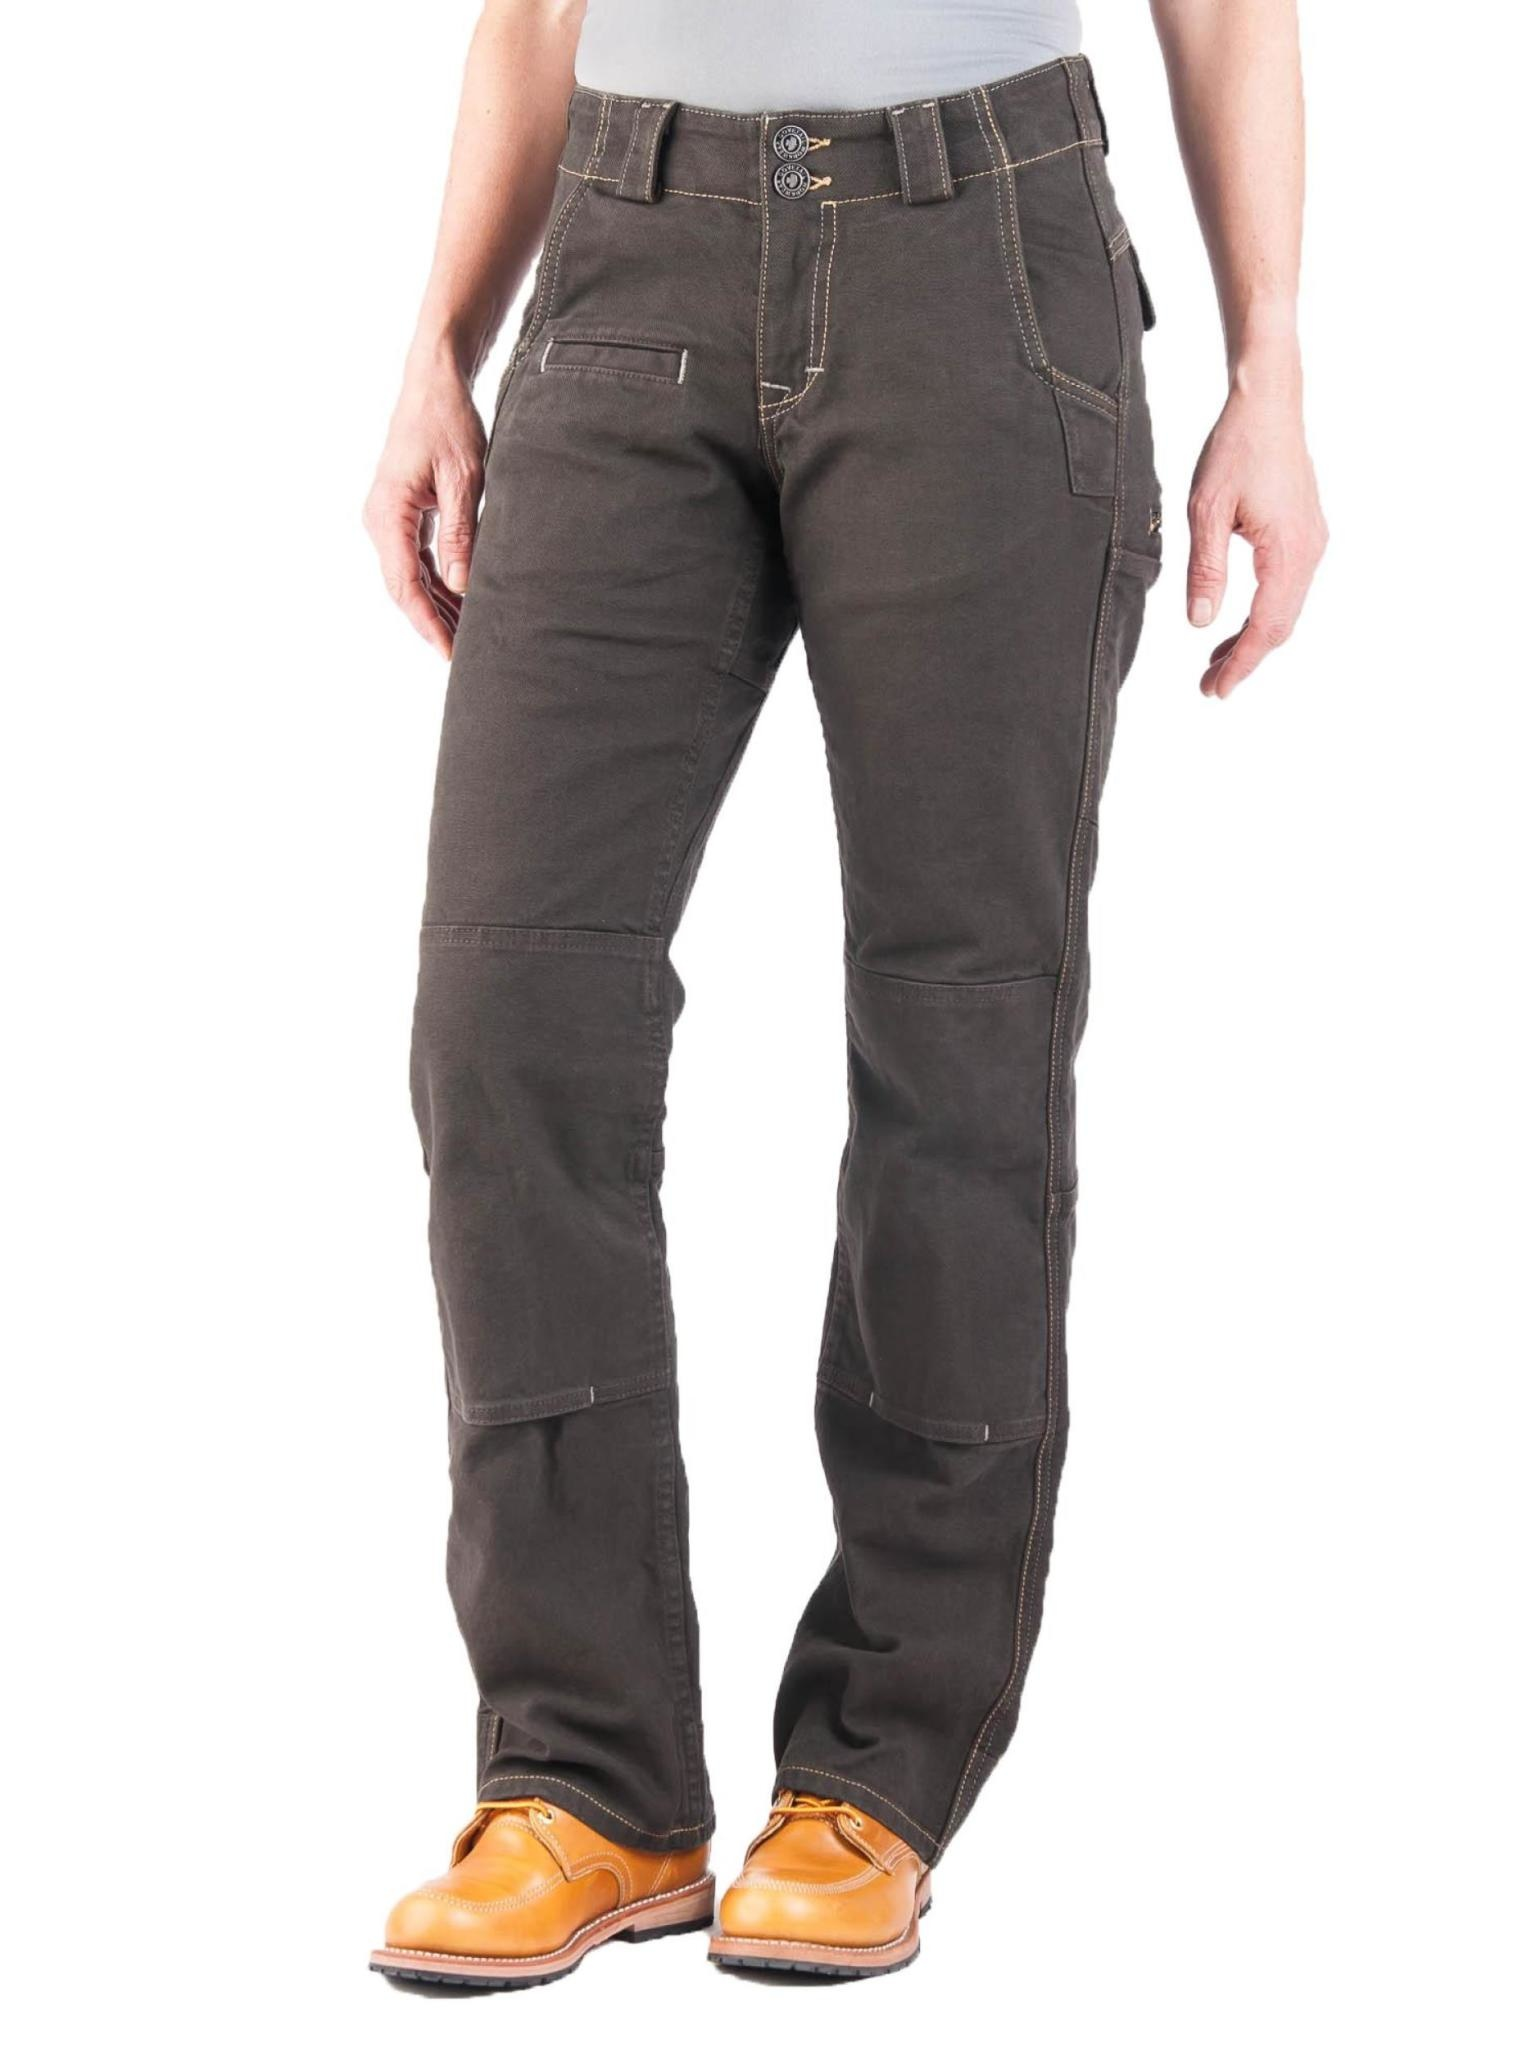 Dovetail Day Construct Pants